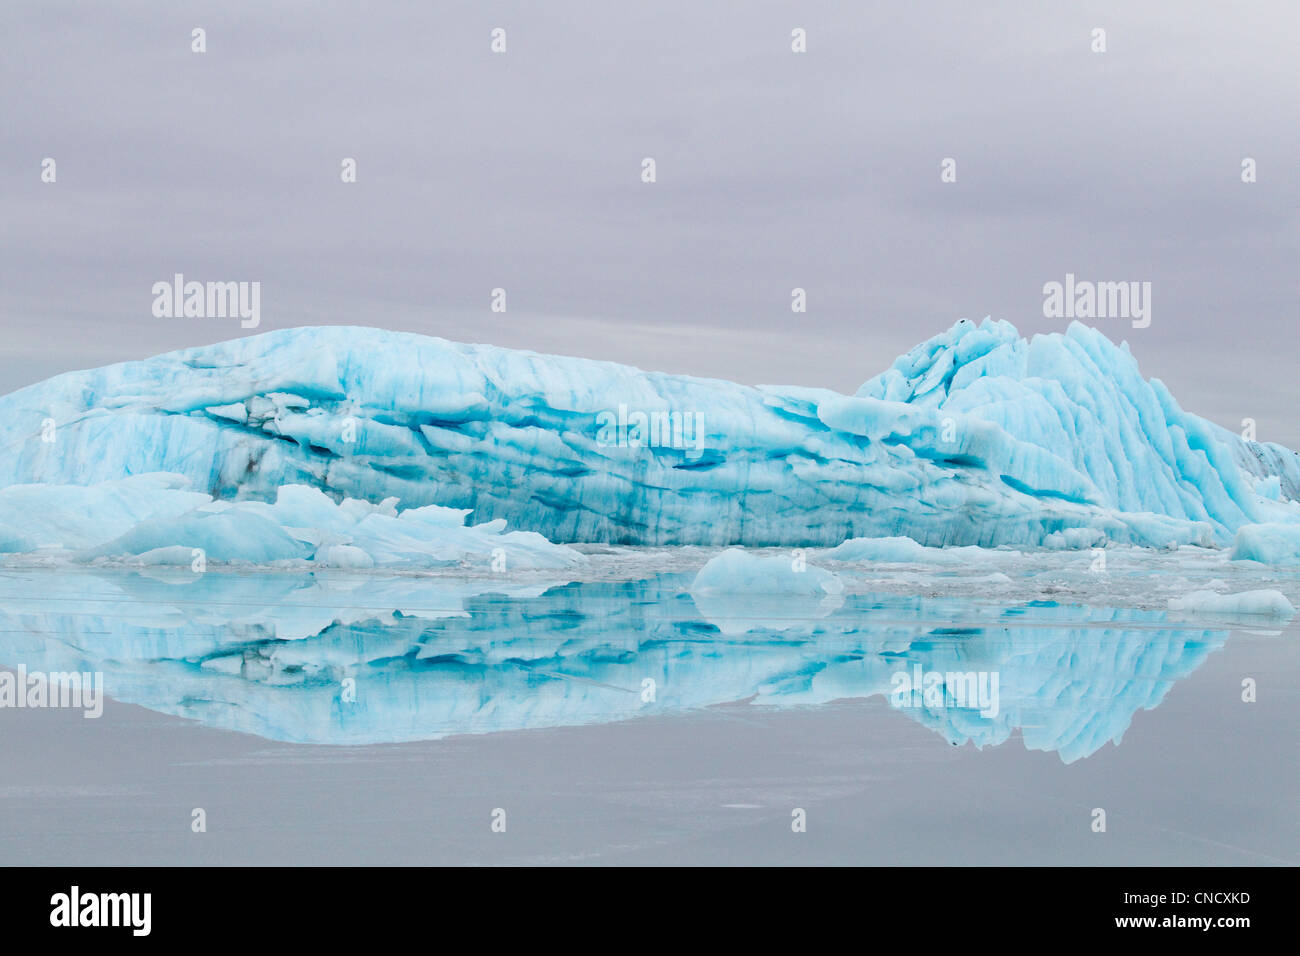 Blue iceberg from Sheridan Glacier reflects on thin film of water over ice, Chugach Mountains near Cordova, Alaska, - Stock Image